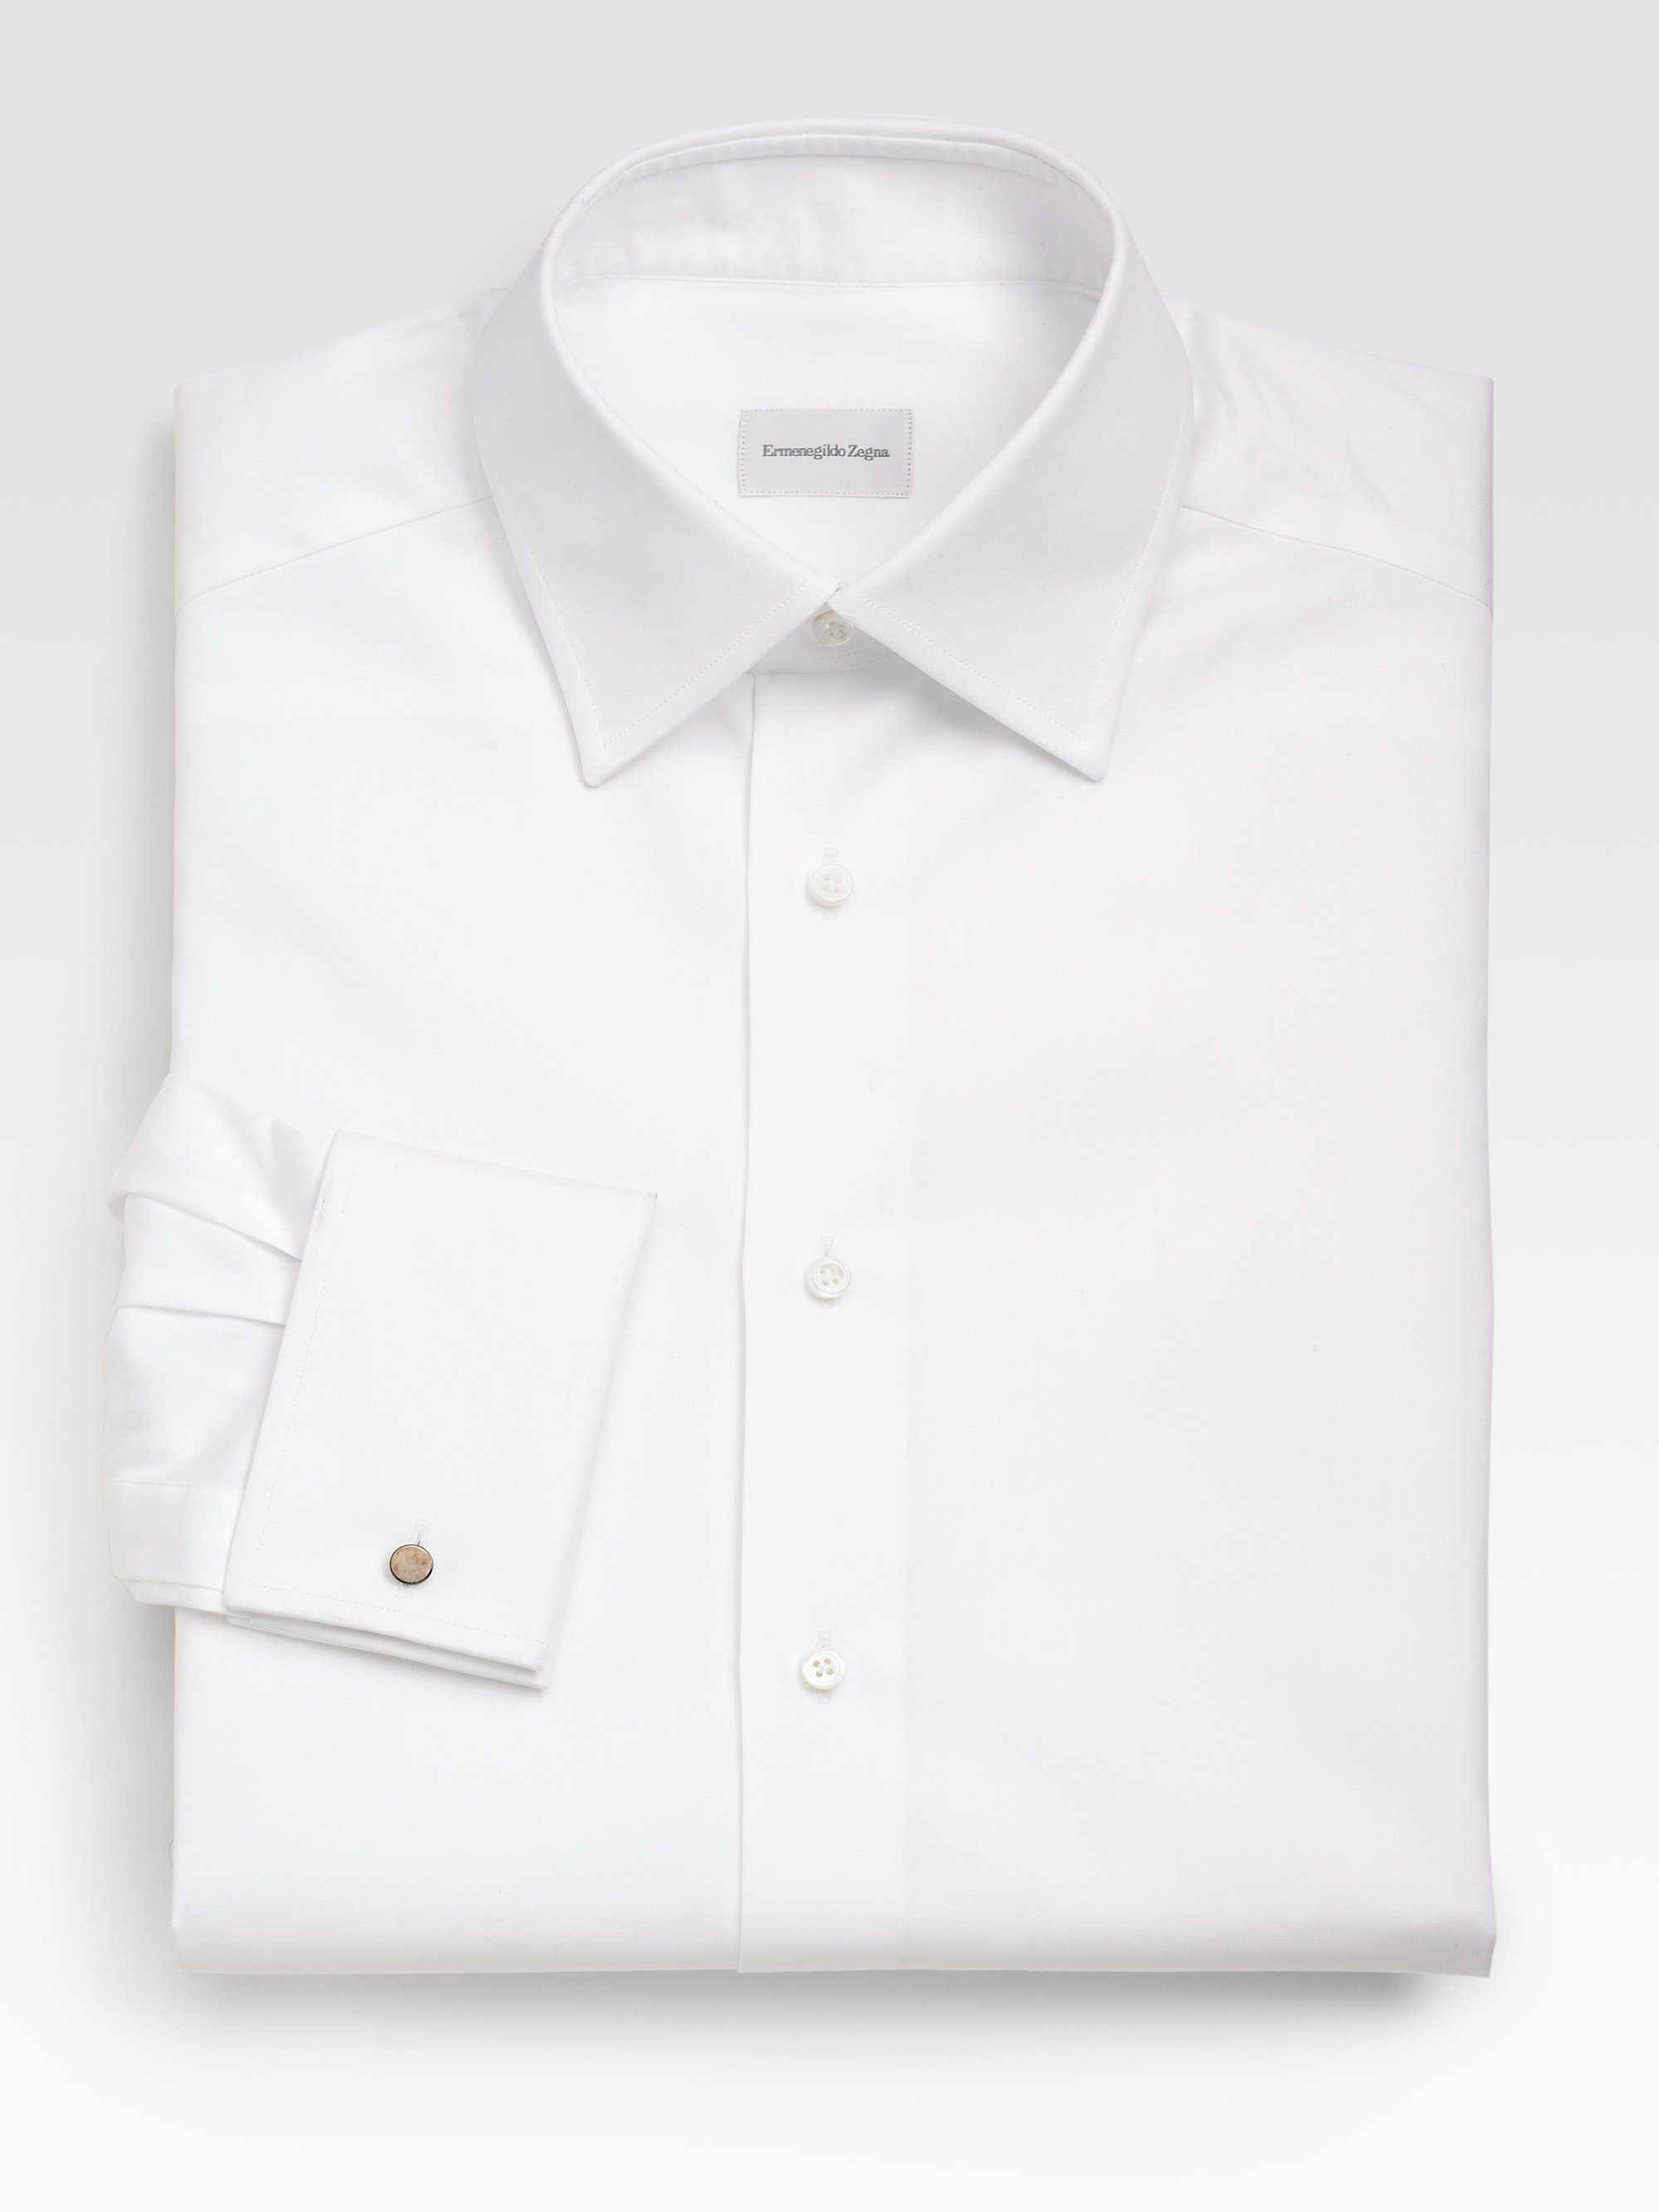 Ermenegildo zegna french cuff dress shirt in white for men for Mens dress shirts french cuffs